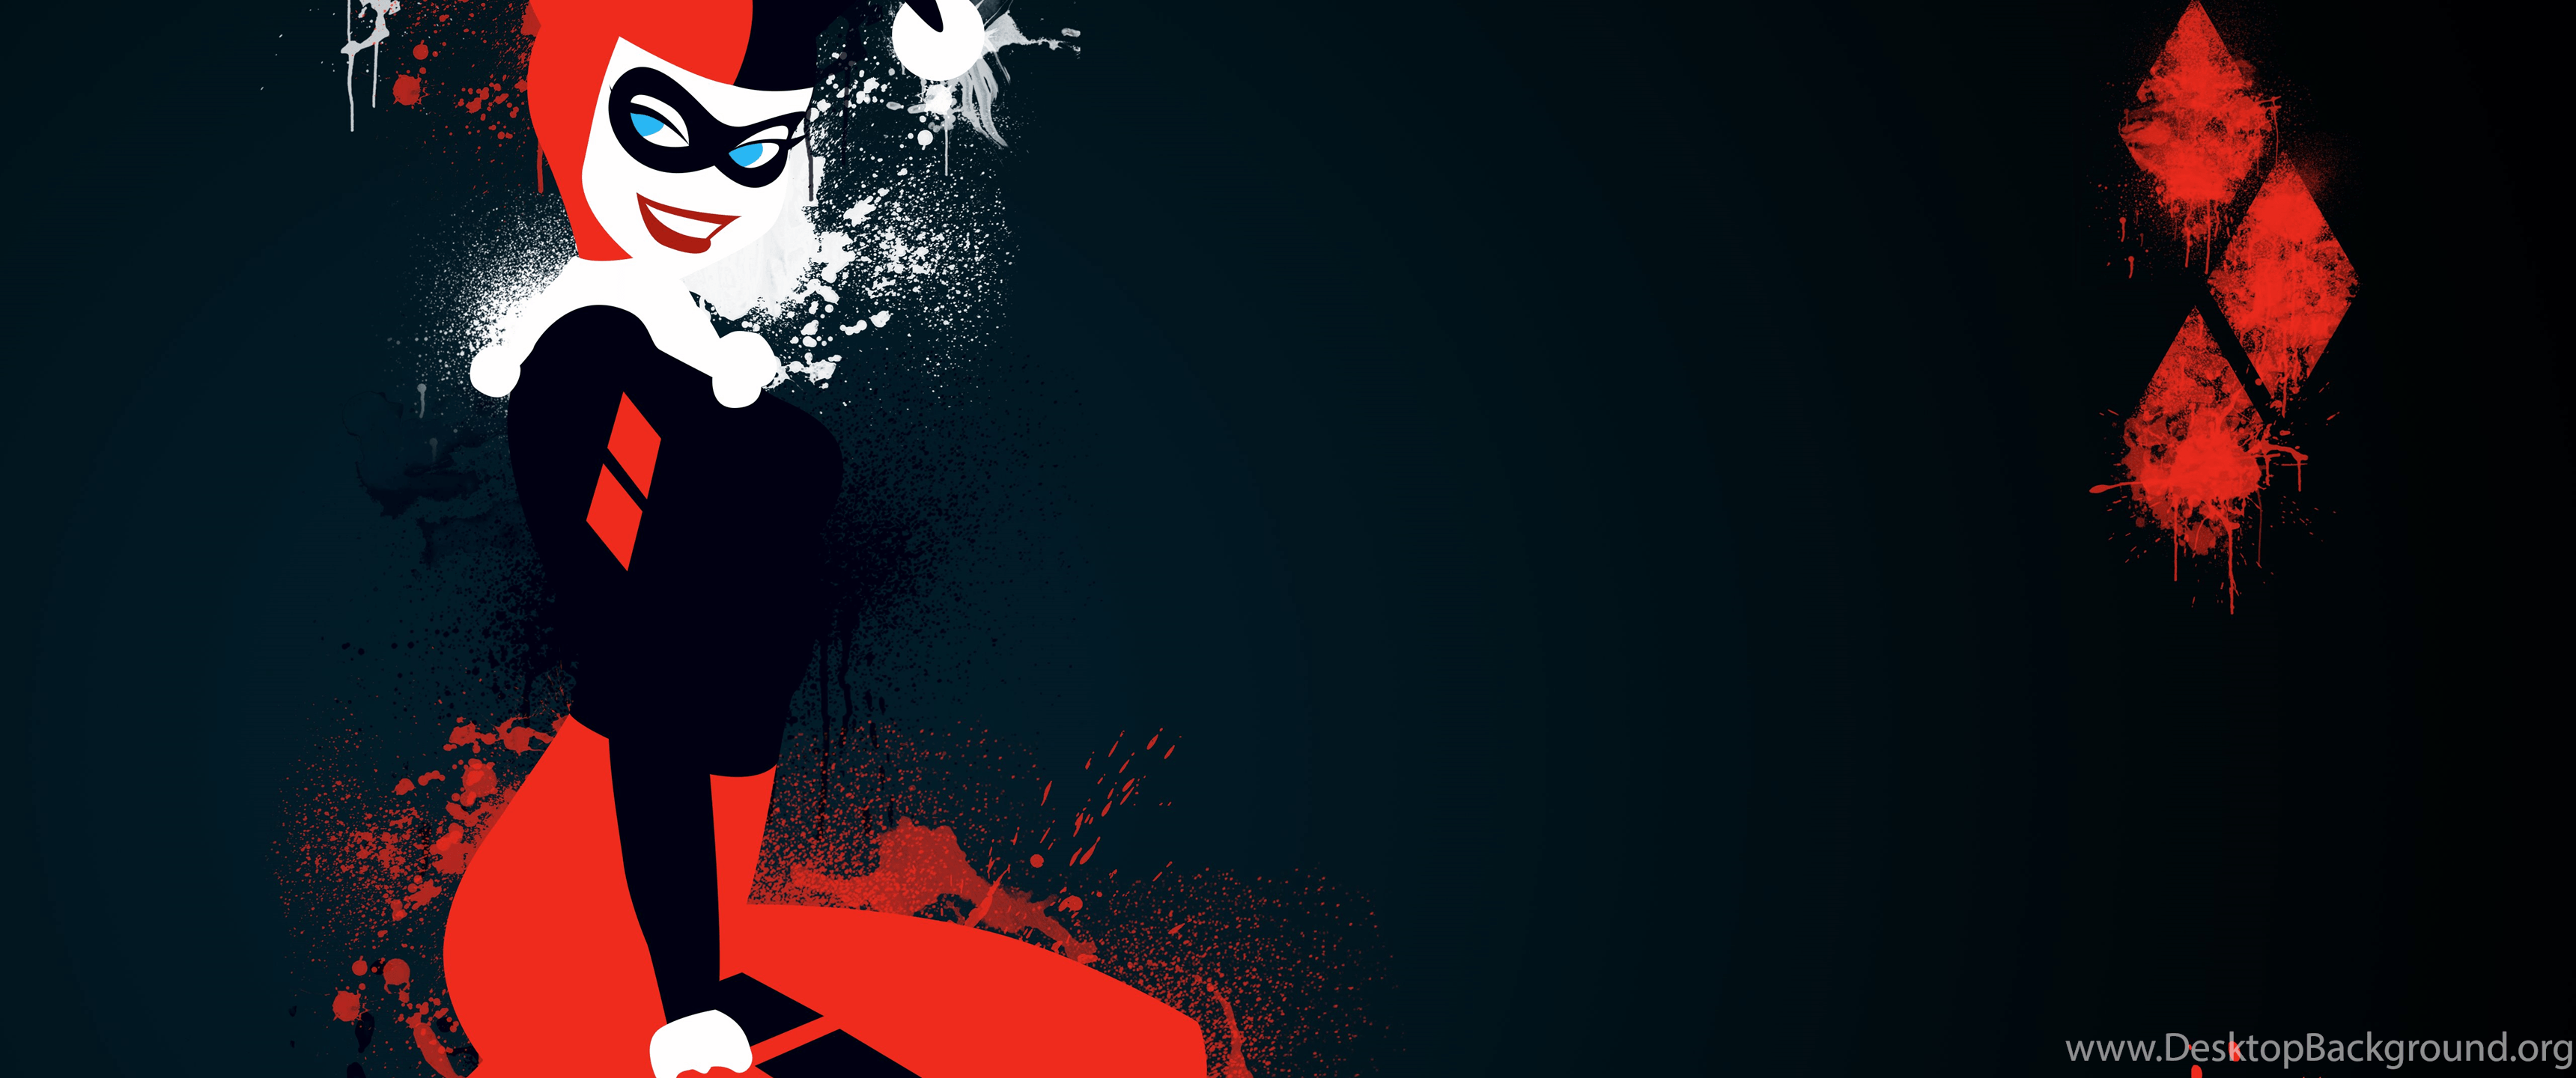 2560 X 1024 Harley Quinn Wallpapers - Top Free 2560 X 1024 Harley